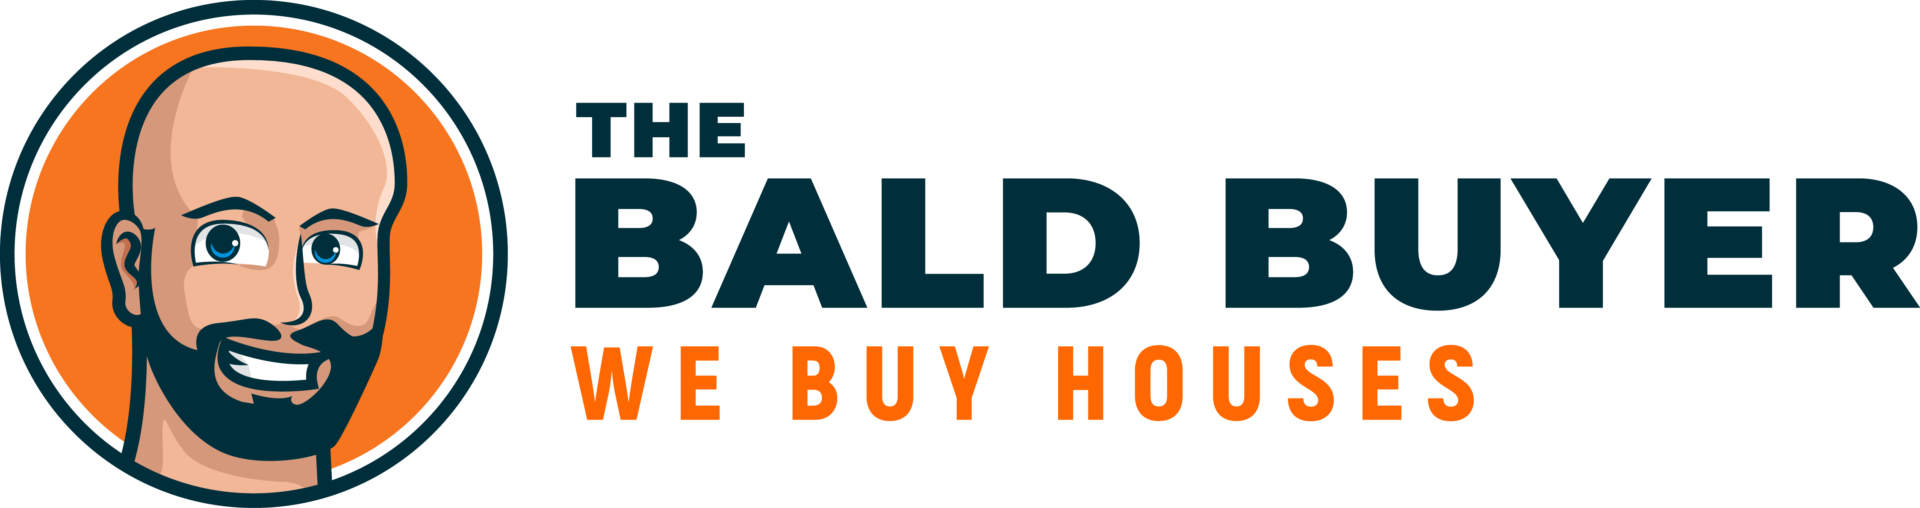 The Bald Buyer  logo